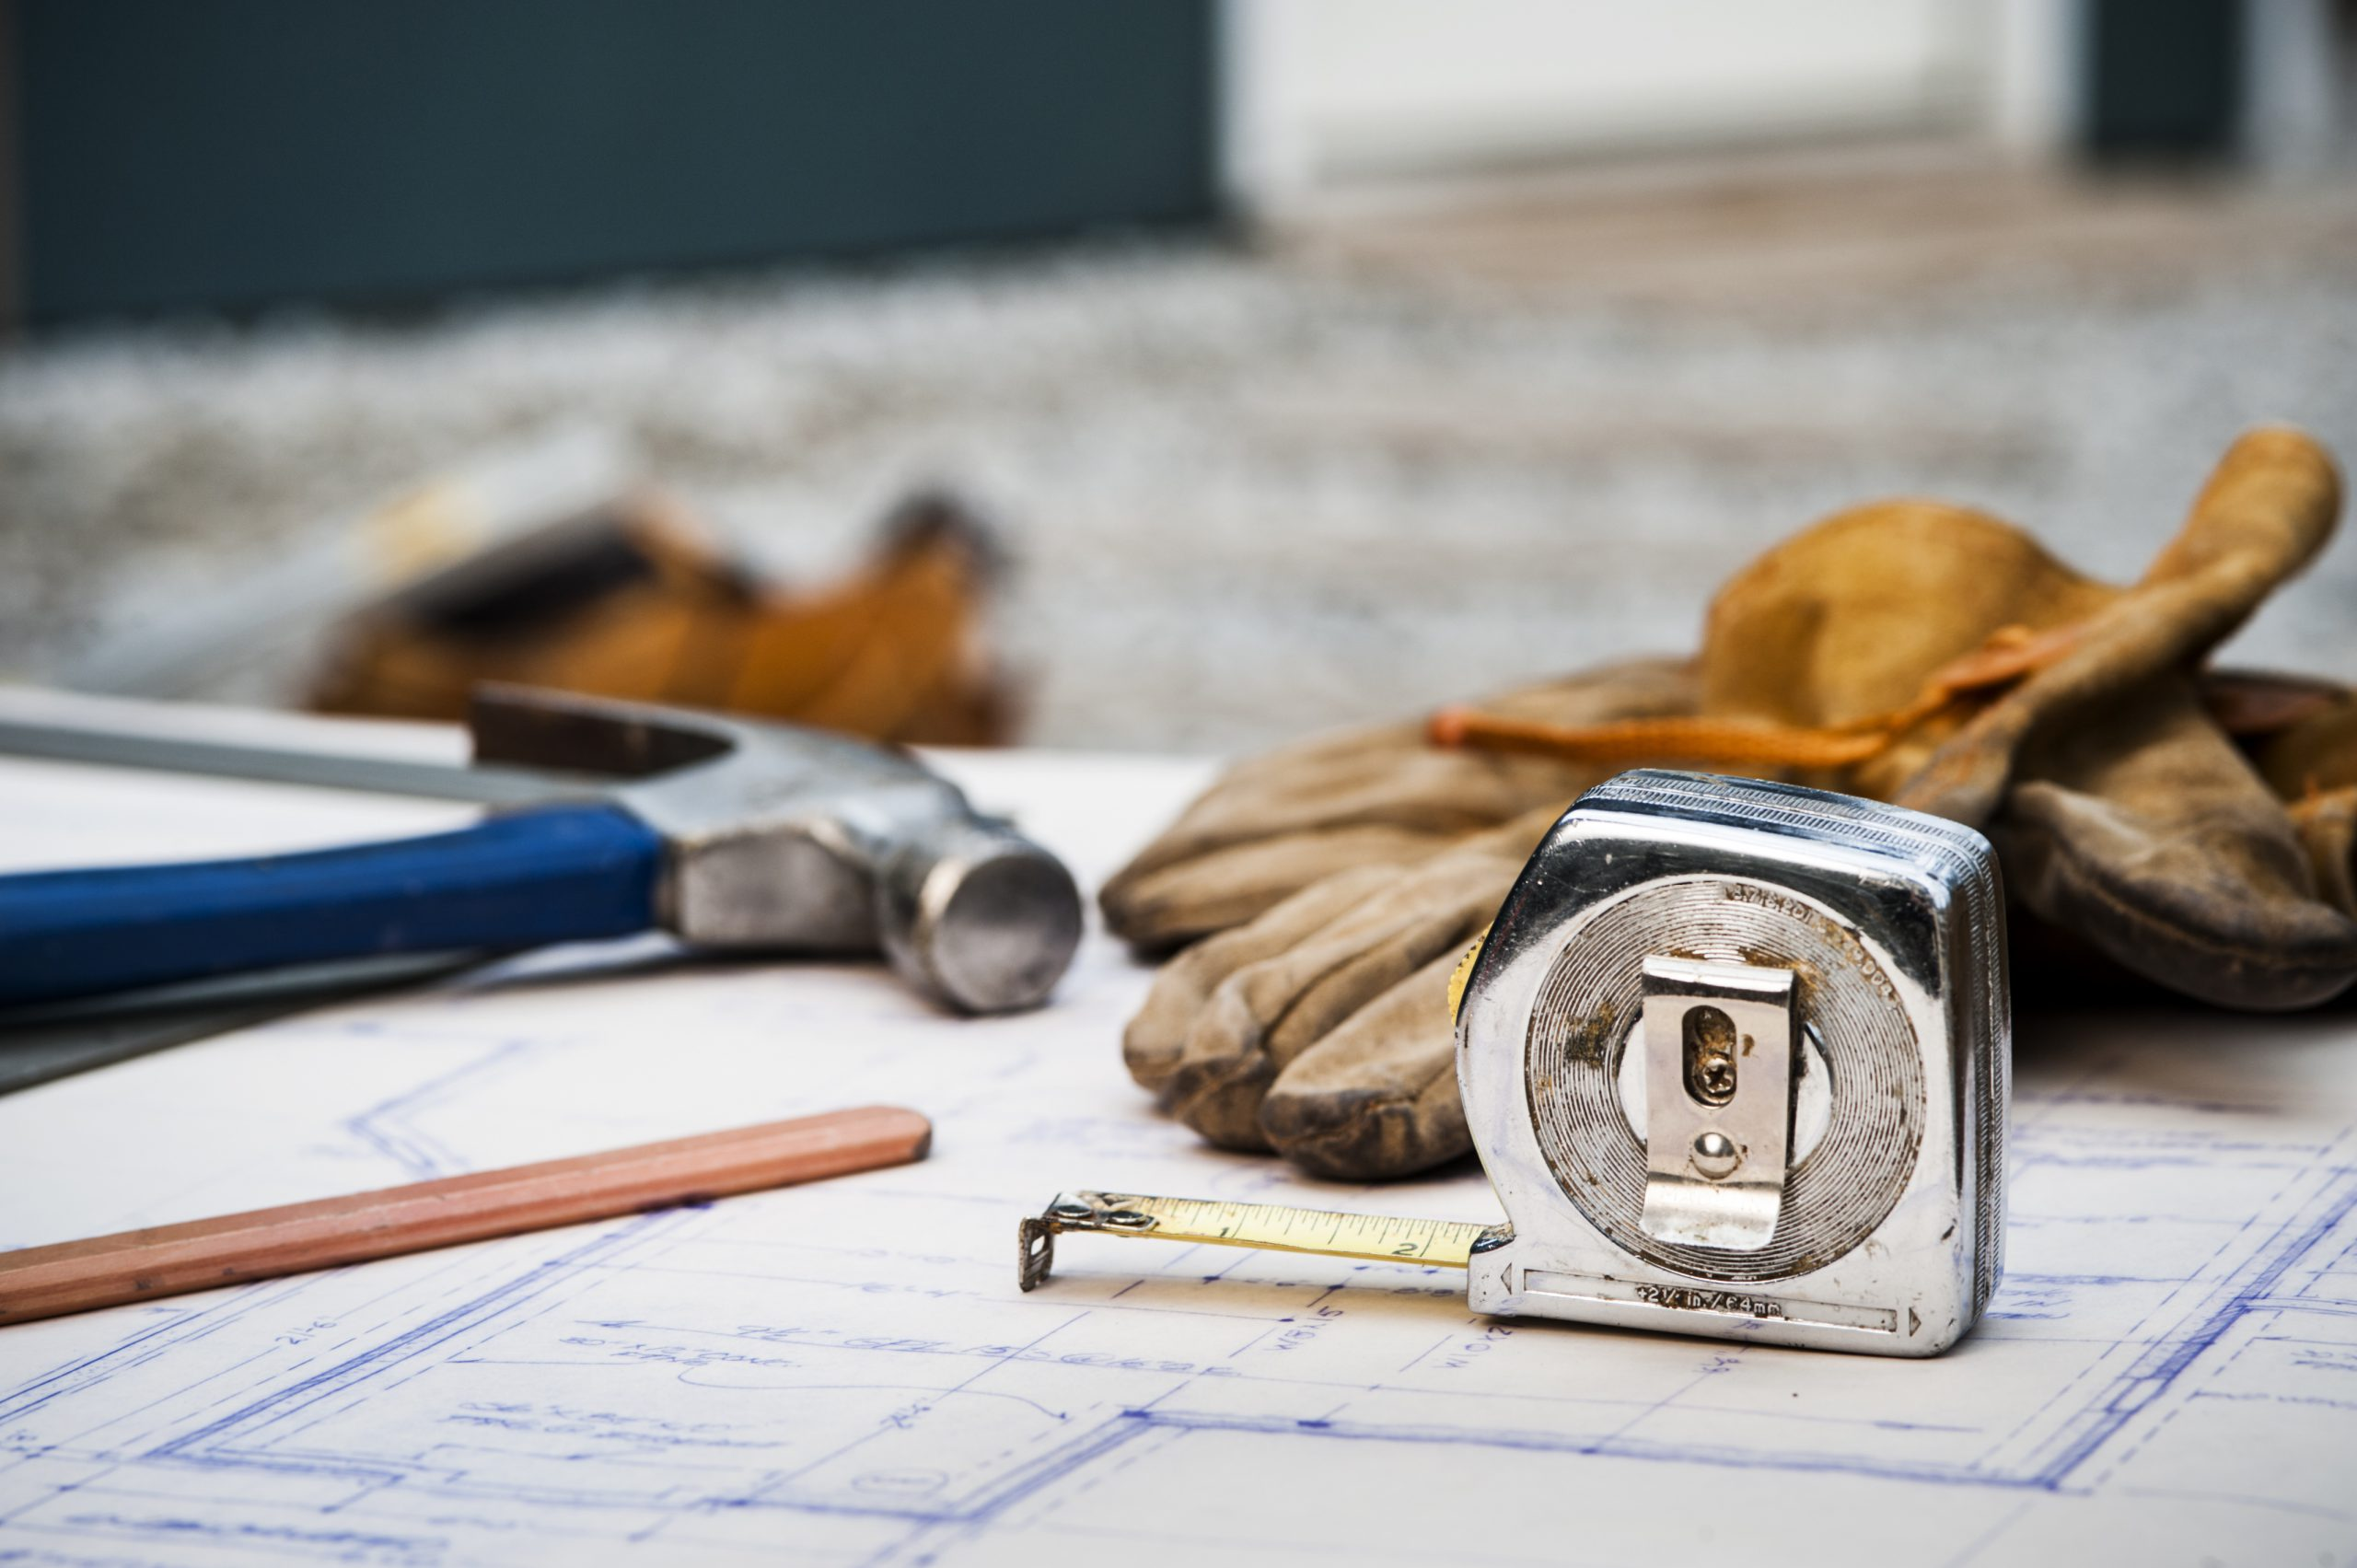 We are expert builders with the right tools and mind set to build your dream space